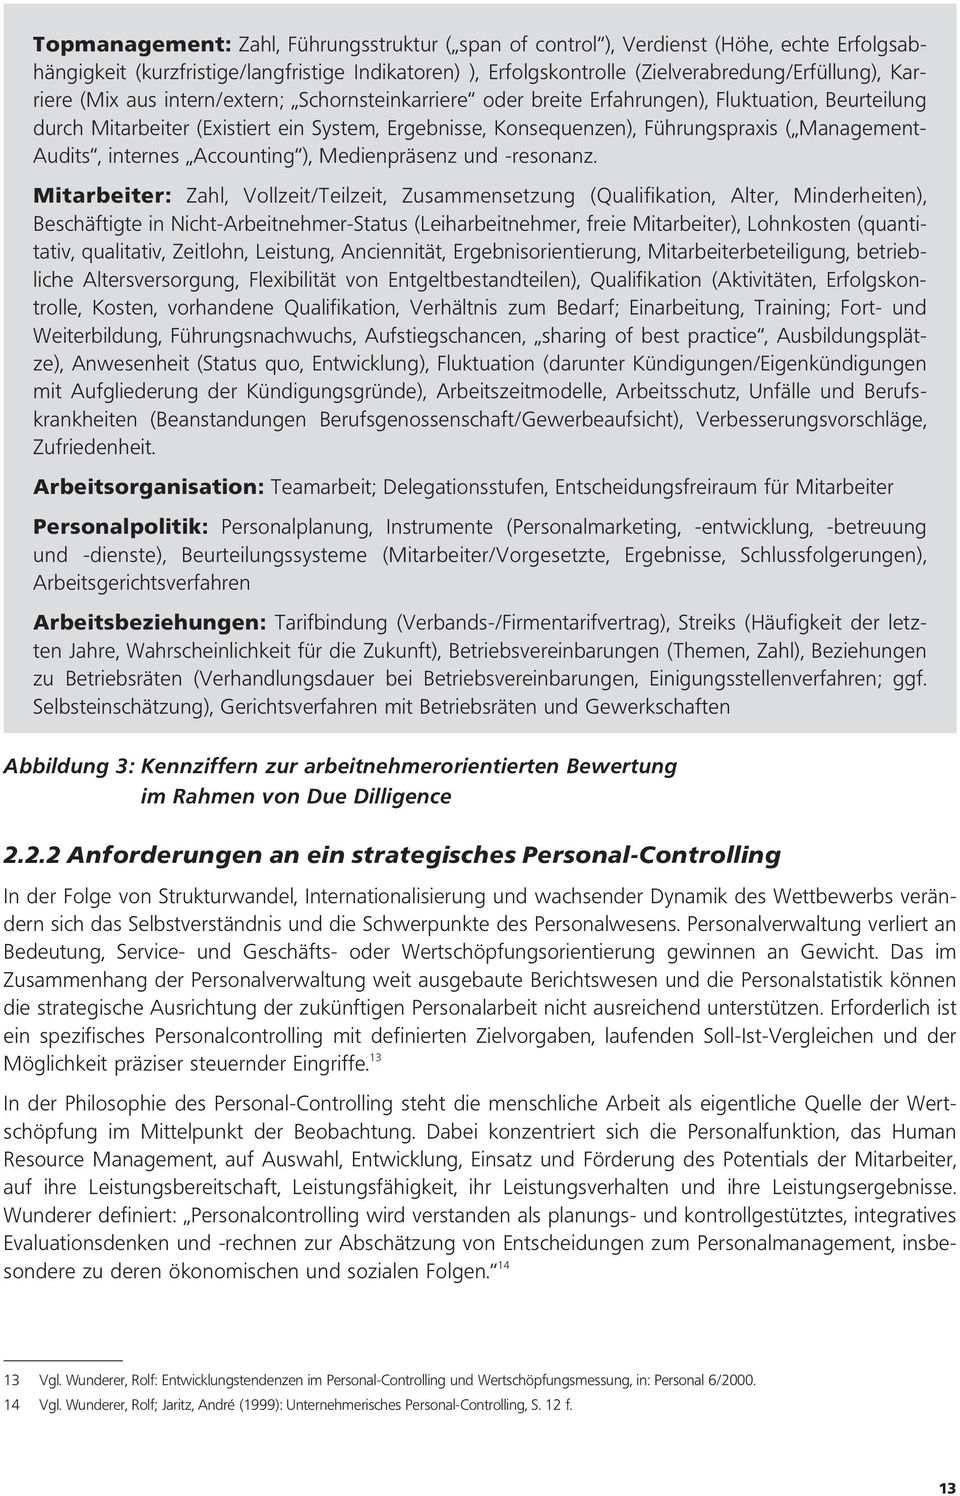 internes Accounting ), Medienpräsenz und -resonanz.